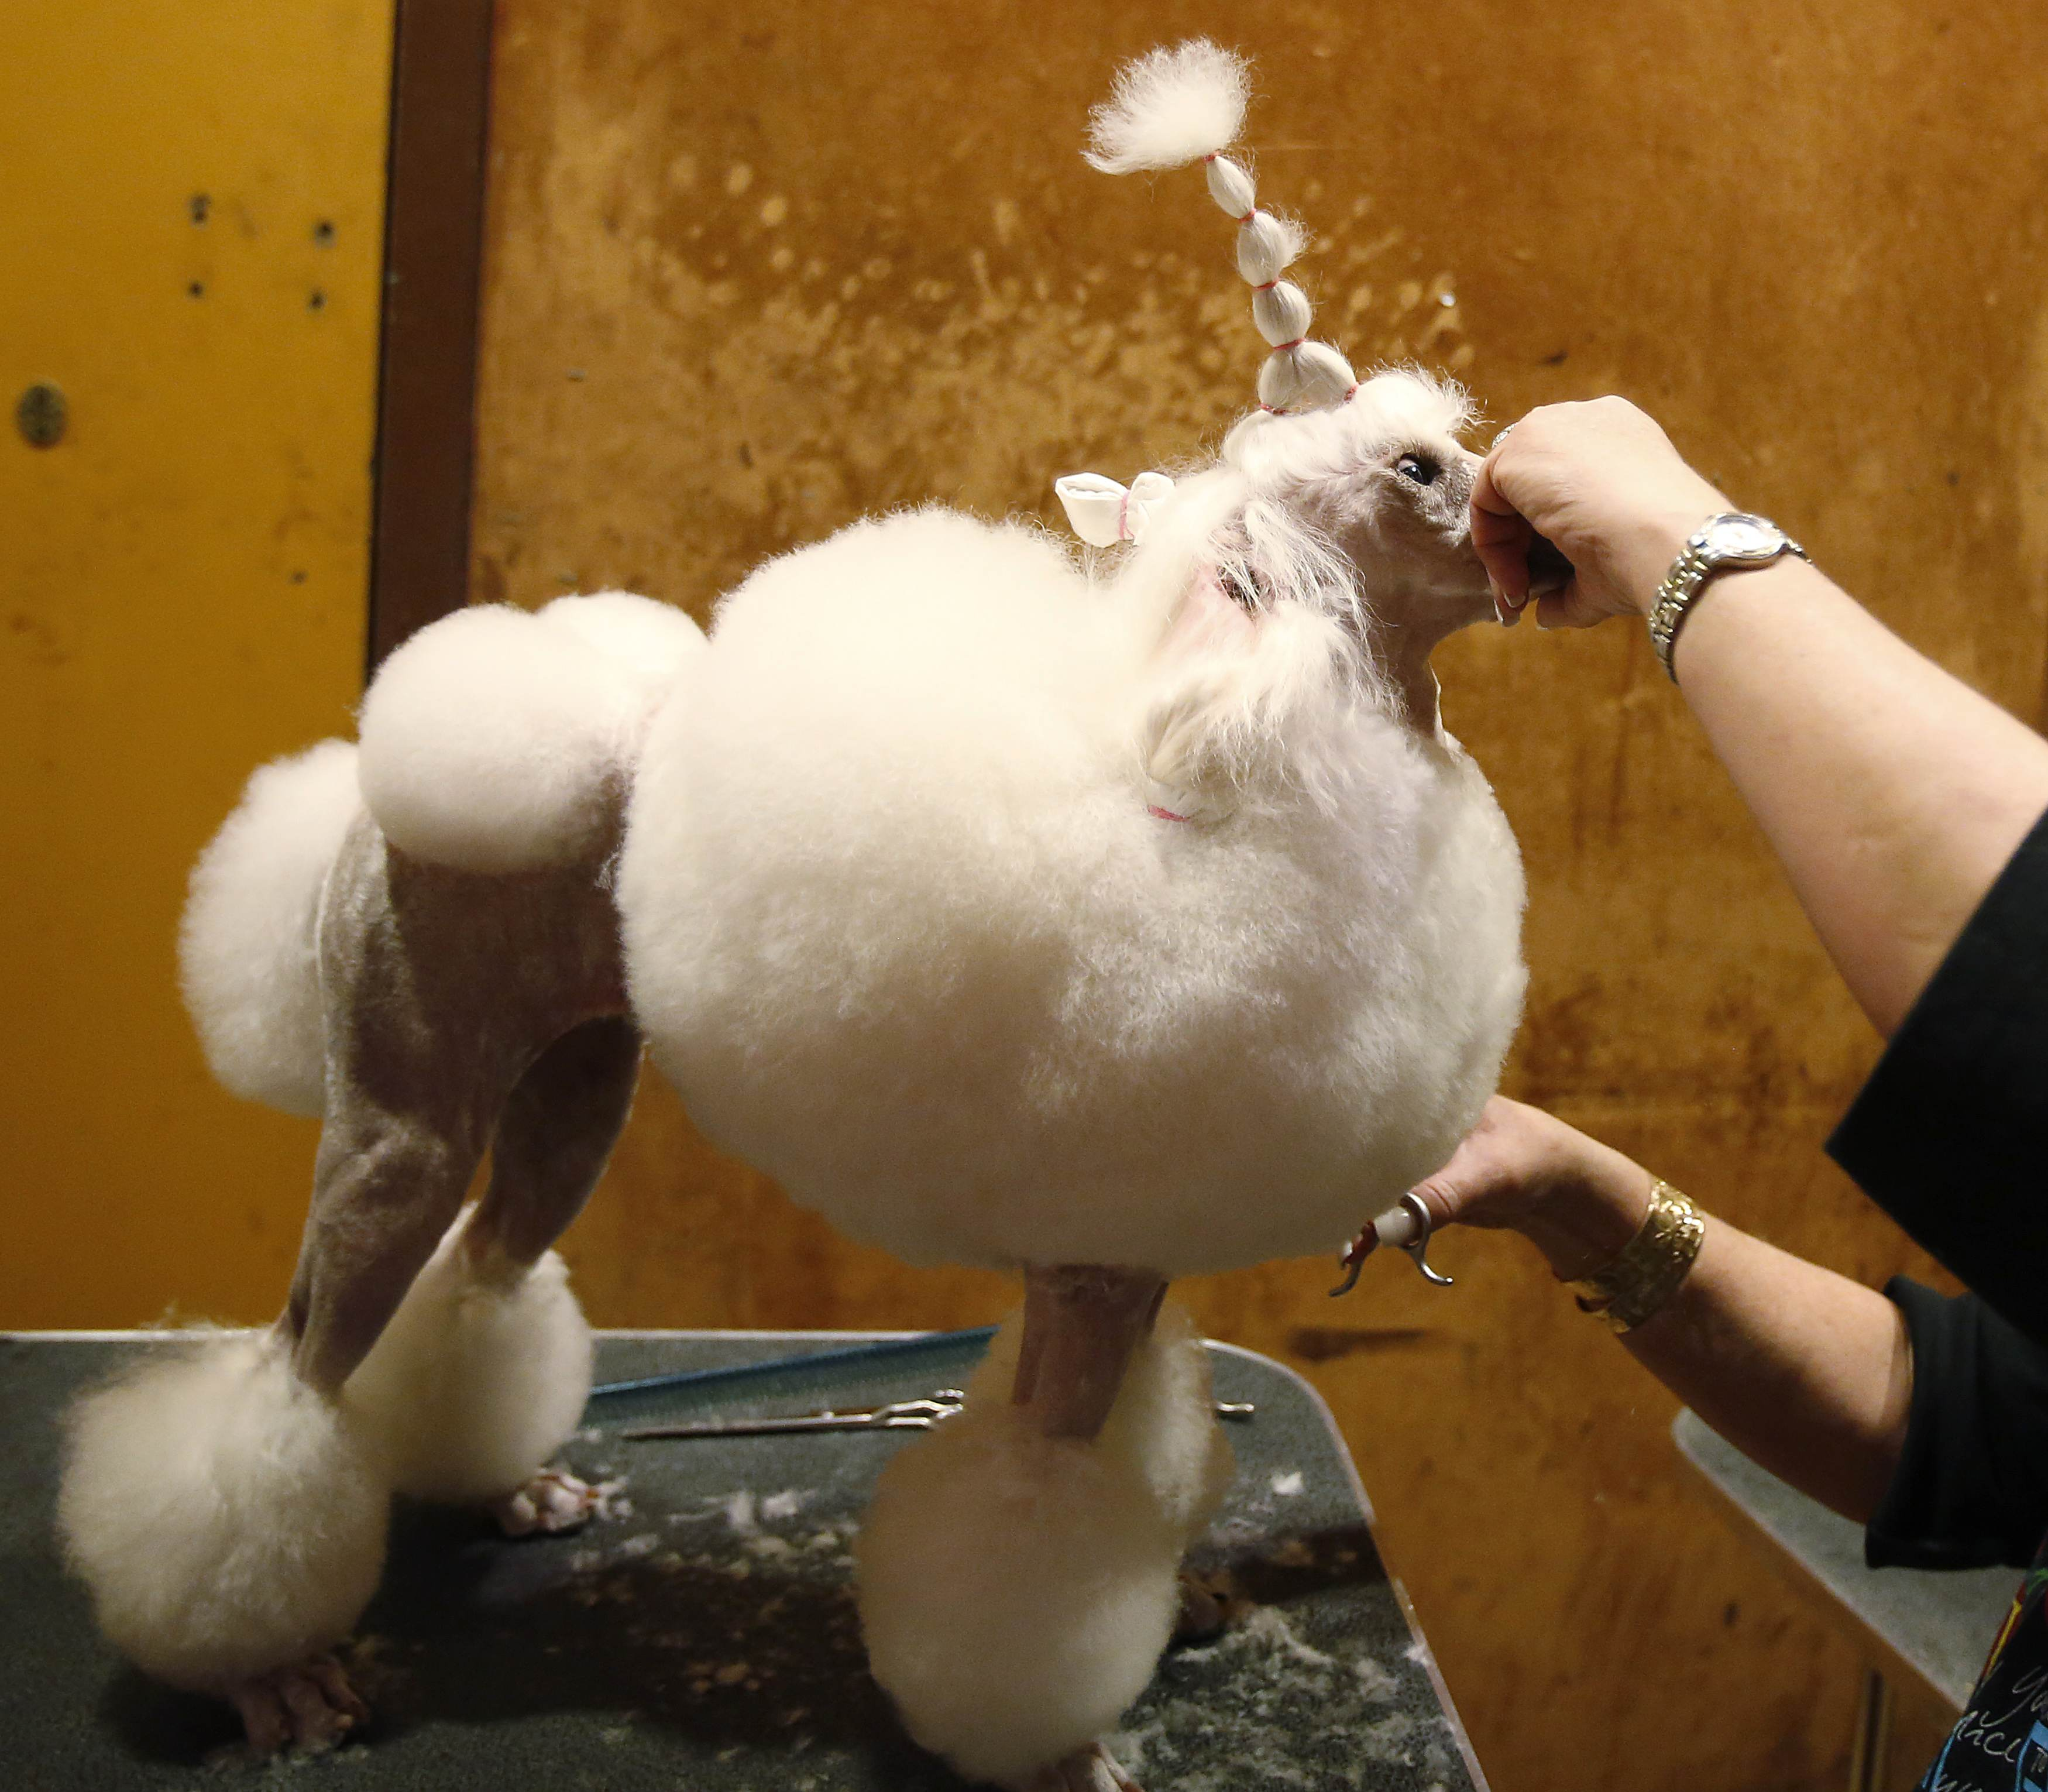 Leslie Simis grooms her dog Sharona, a Miniature Poodle, at the dog spa at the Hotel Pennsylvania in advance of the Westminster Dog Show. ? Reuters Photo